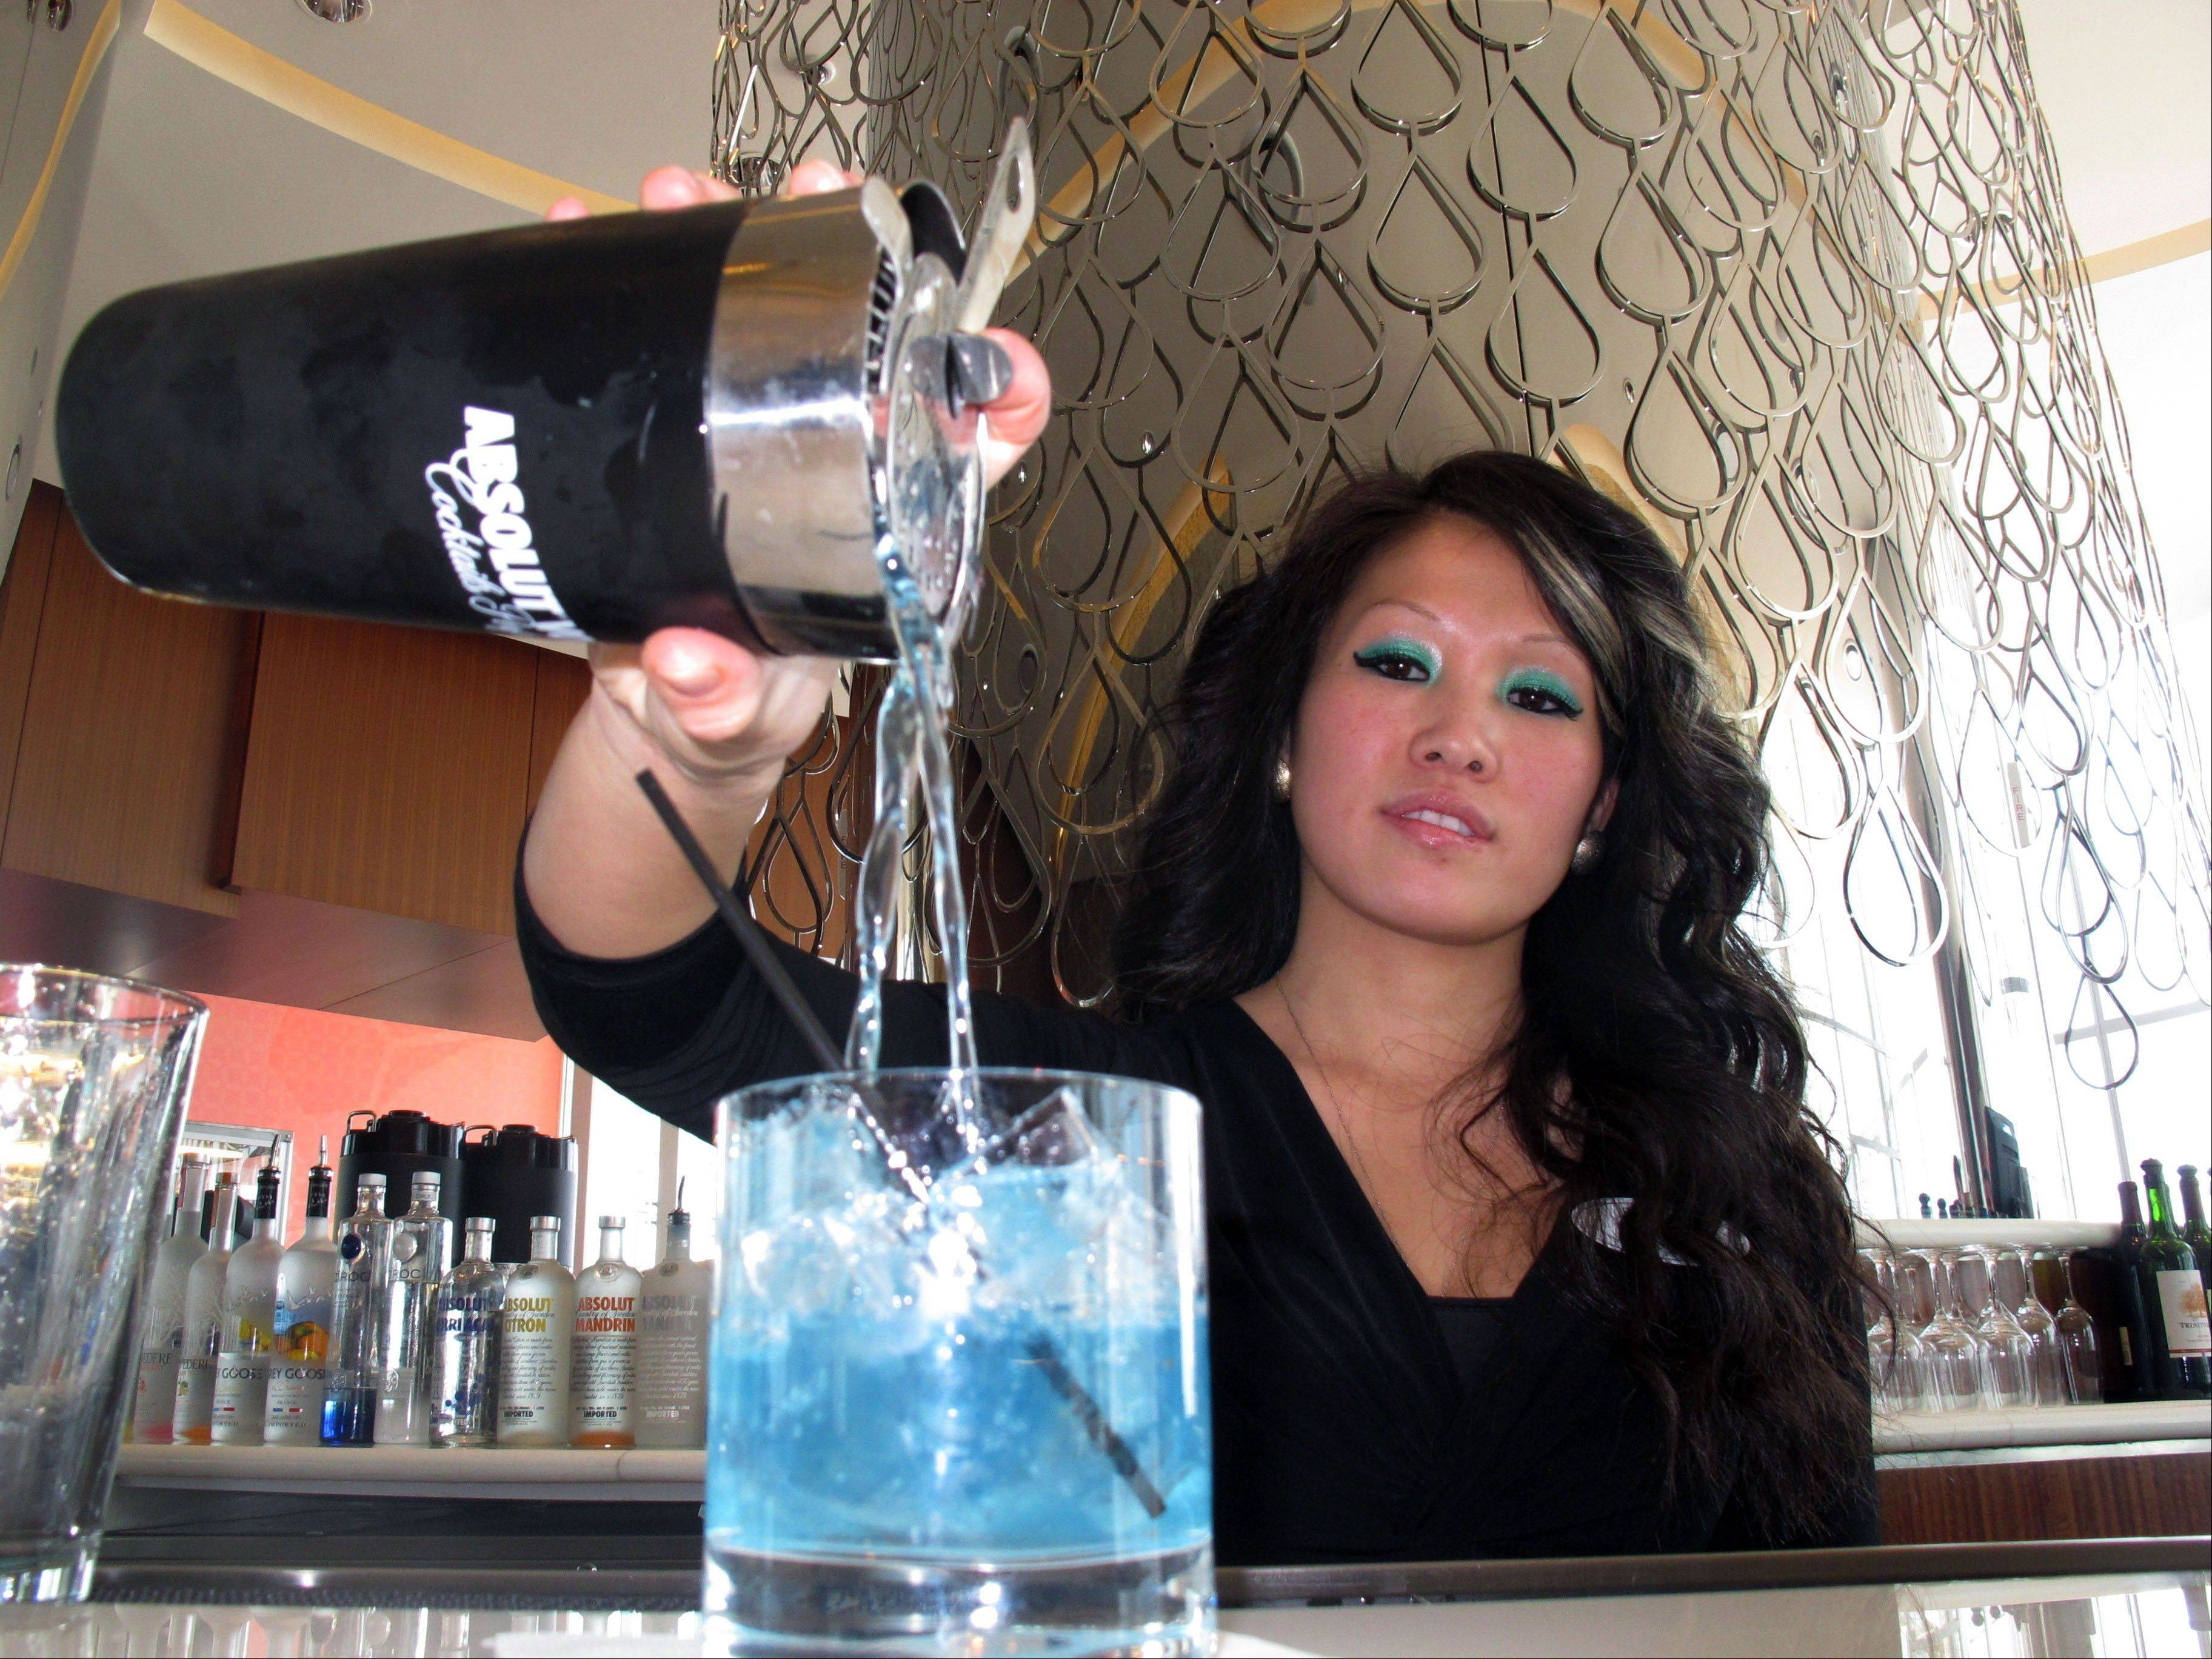 Associated Press/April 8 Mary Ma, a bartender at Revel, Atlantic City, N.J.�s newest casino, pours a drink at one of the casino�s bars. The Institute for Supply Management said Friday that its index of non-manufacturing activity fell to 53.1 in April from 54.4 in March. Any reading above 50 indicates expansion.